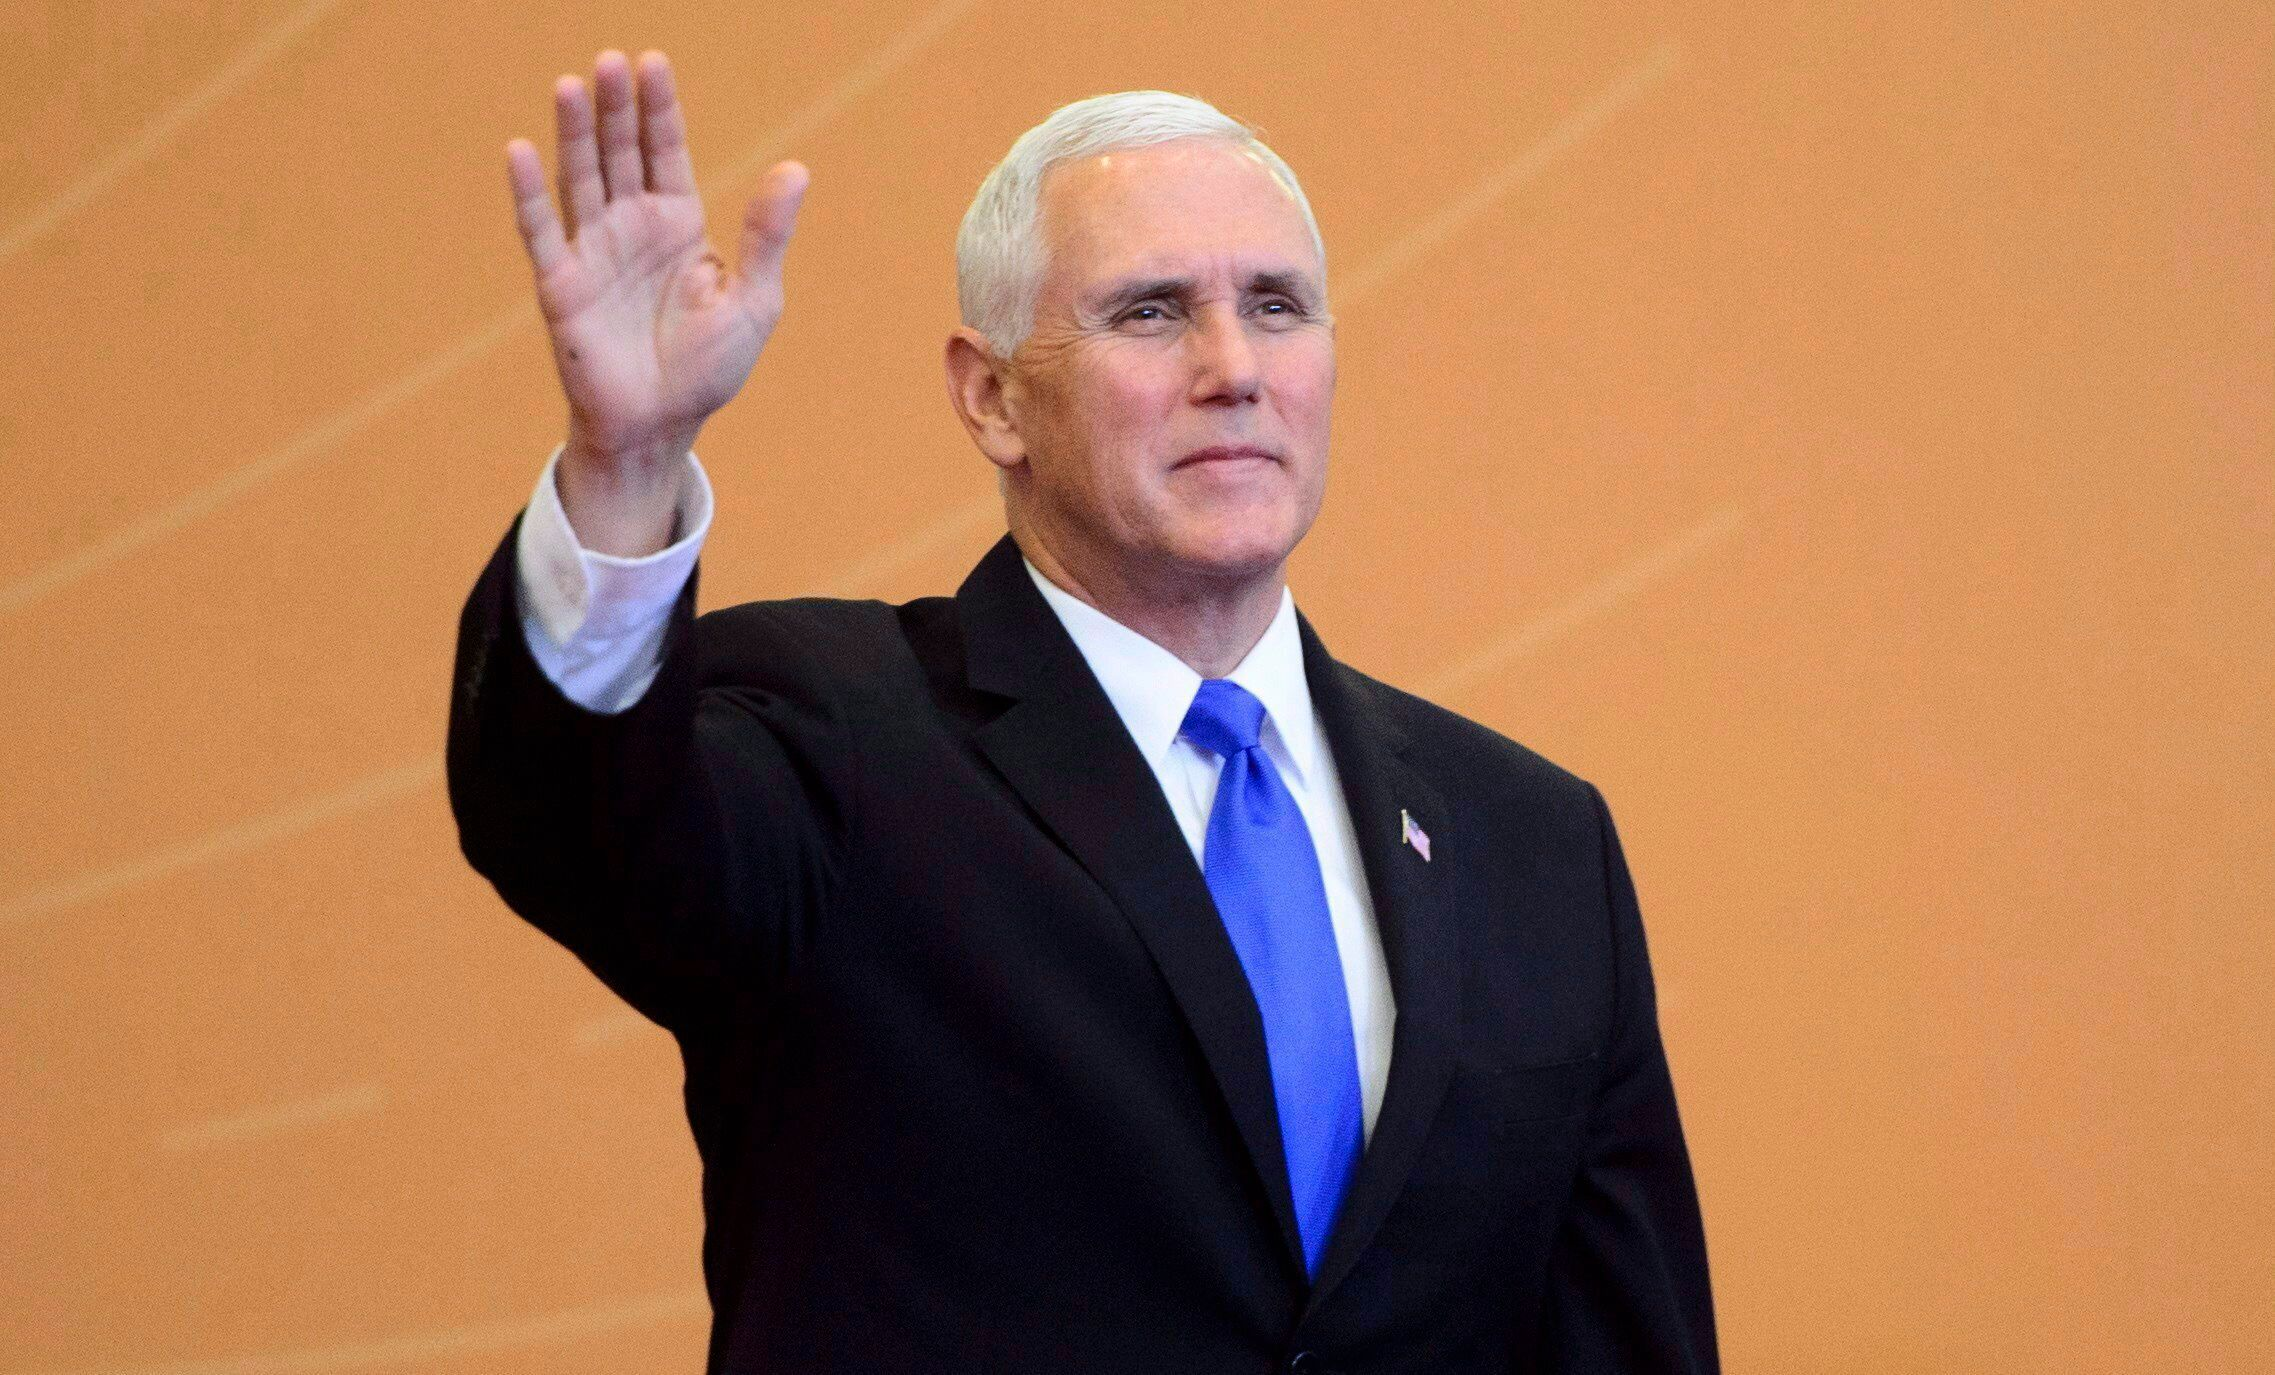 Mike Pence Has Been 'Valuable Partner For Canada':